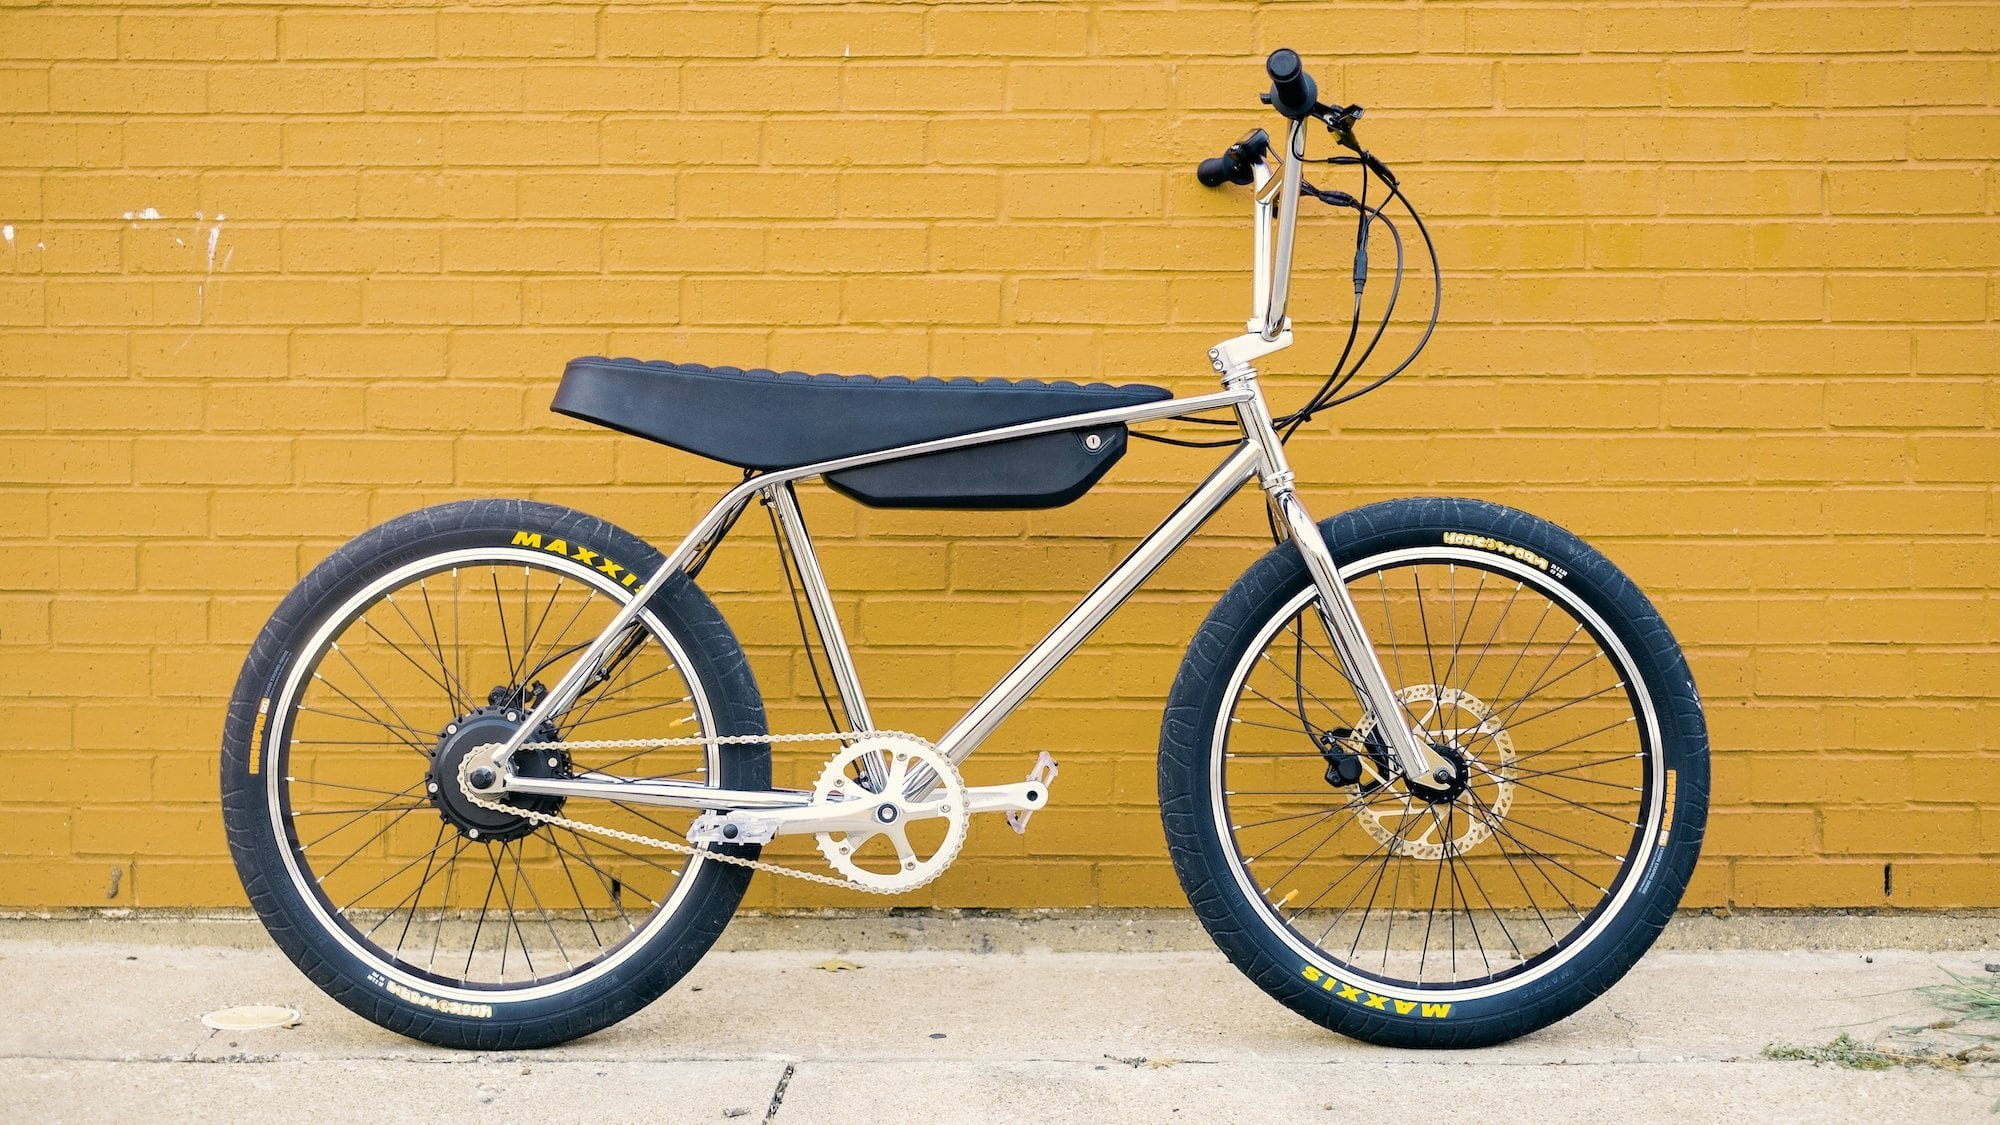 Zooz Bikes Urban Ultralight high-performance eBike is designed for city thrill seekers